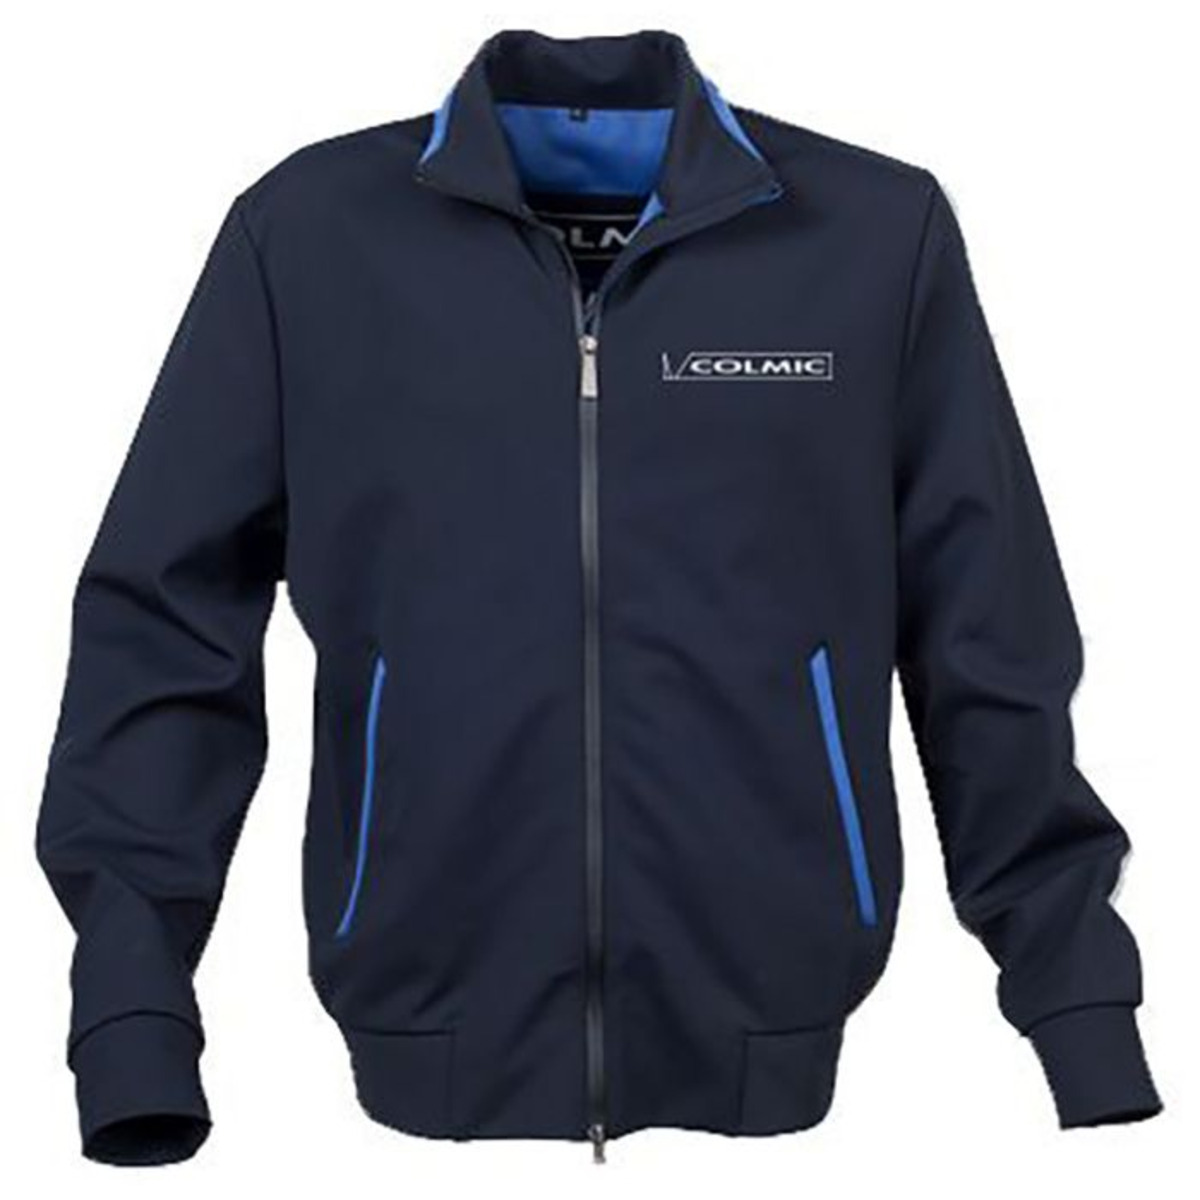 Colmic Giacca Softshell Comfort - S